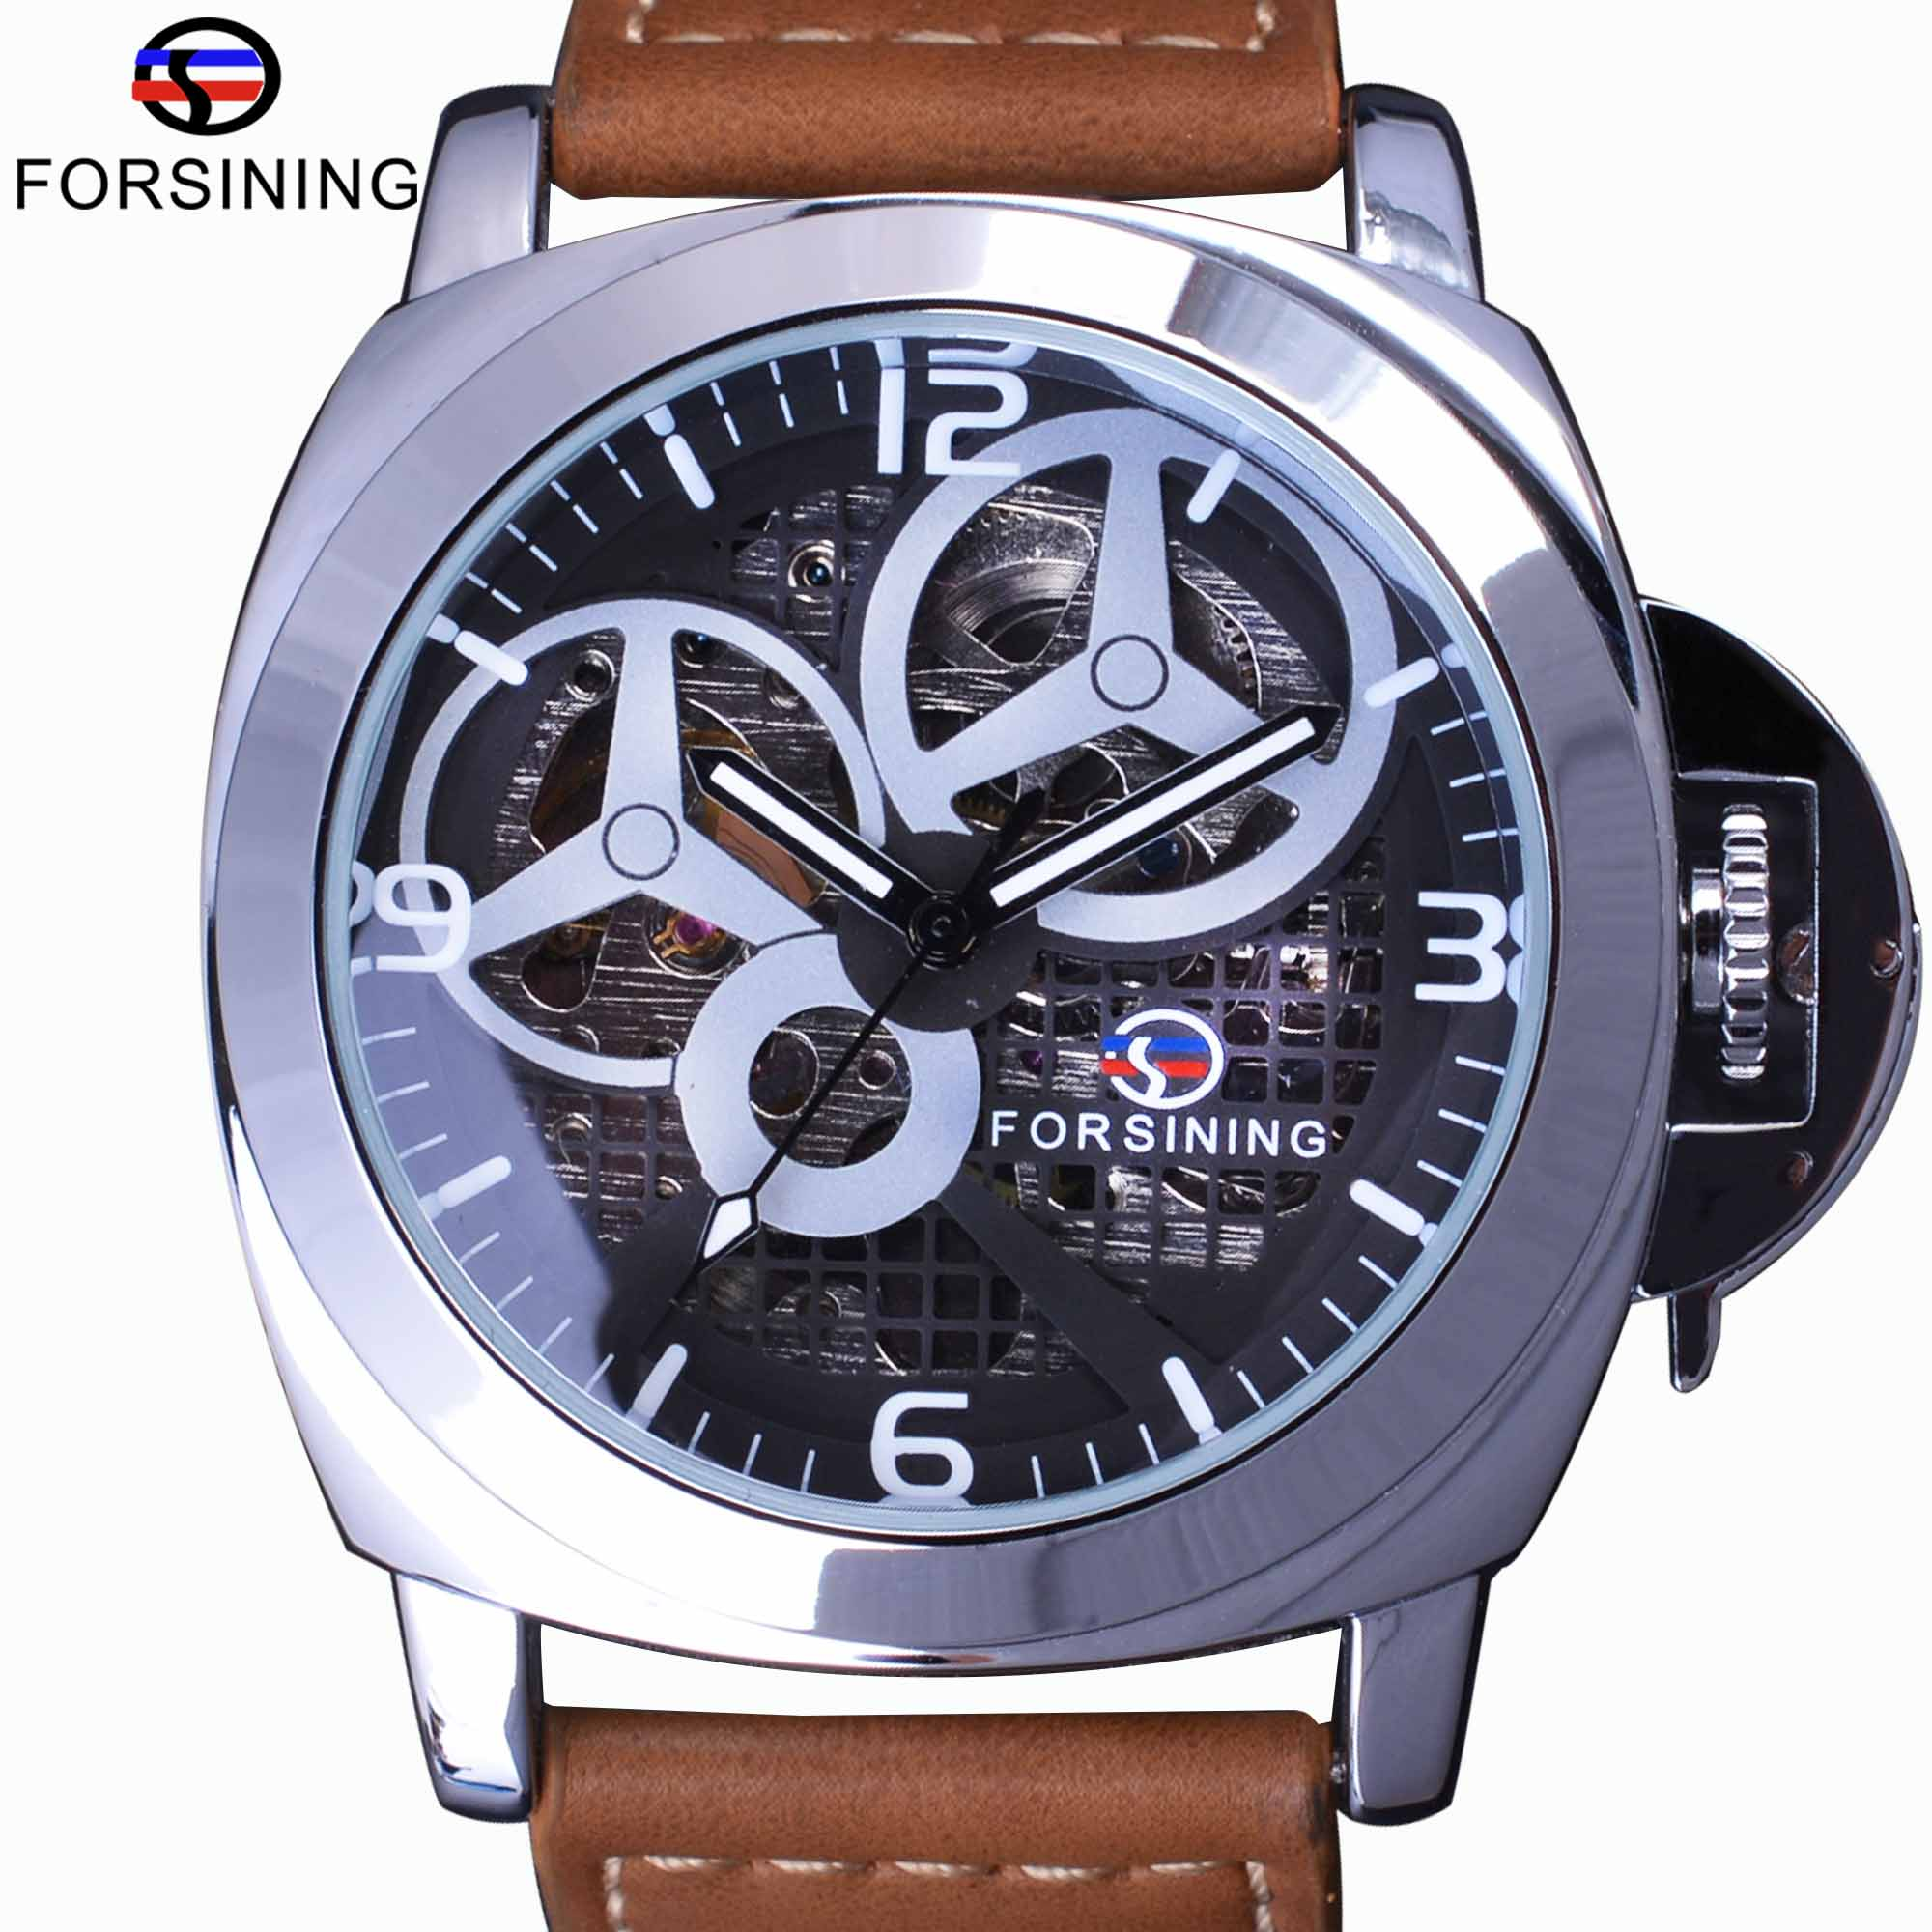 enforcement steel military item design work silver automatic skeleton open brand fashion display watches transparent top sport male casual clock diamond forsining luxury mechanical watch men law mens stainless